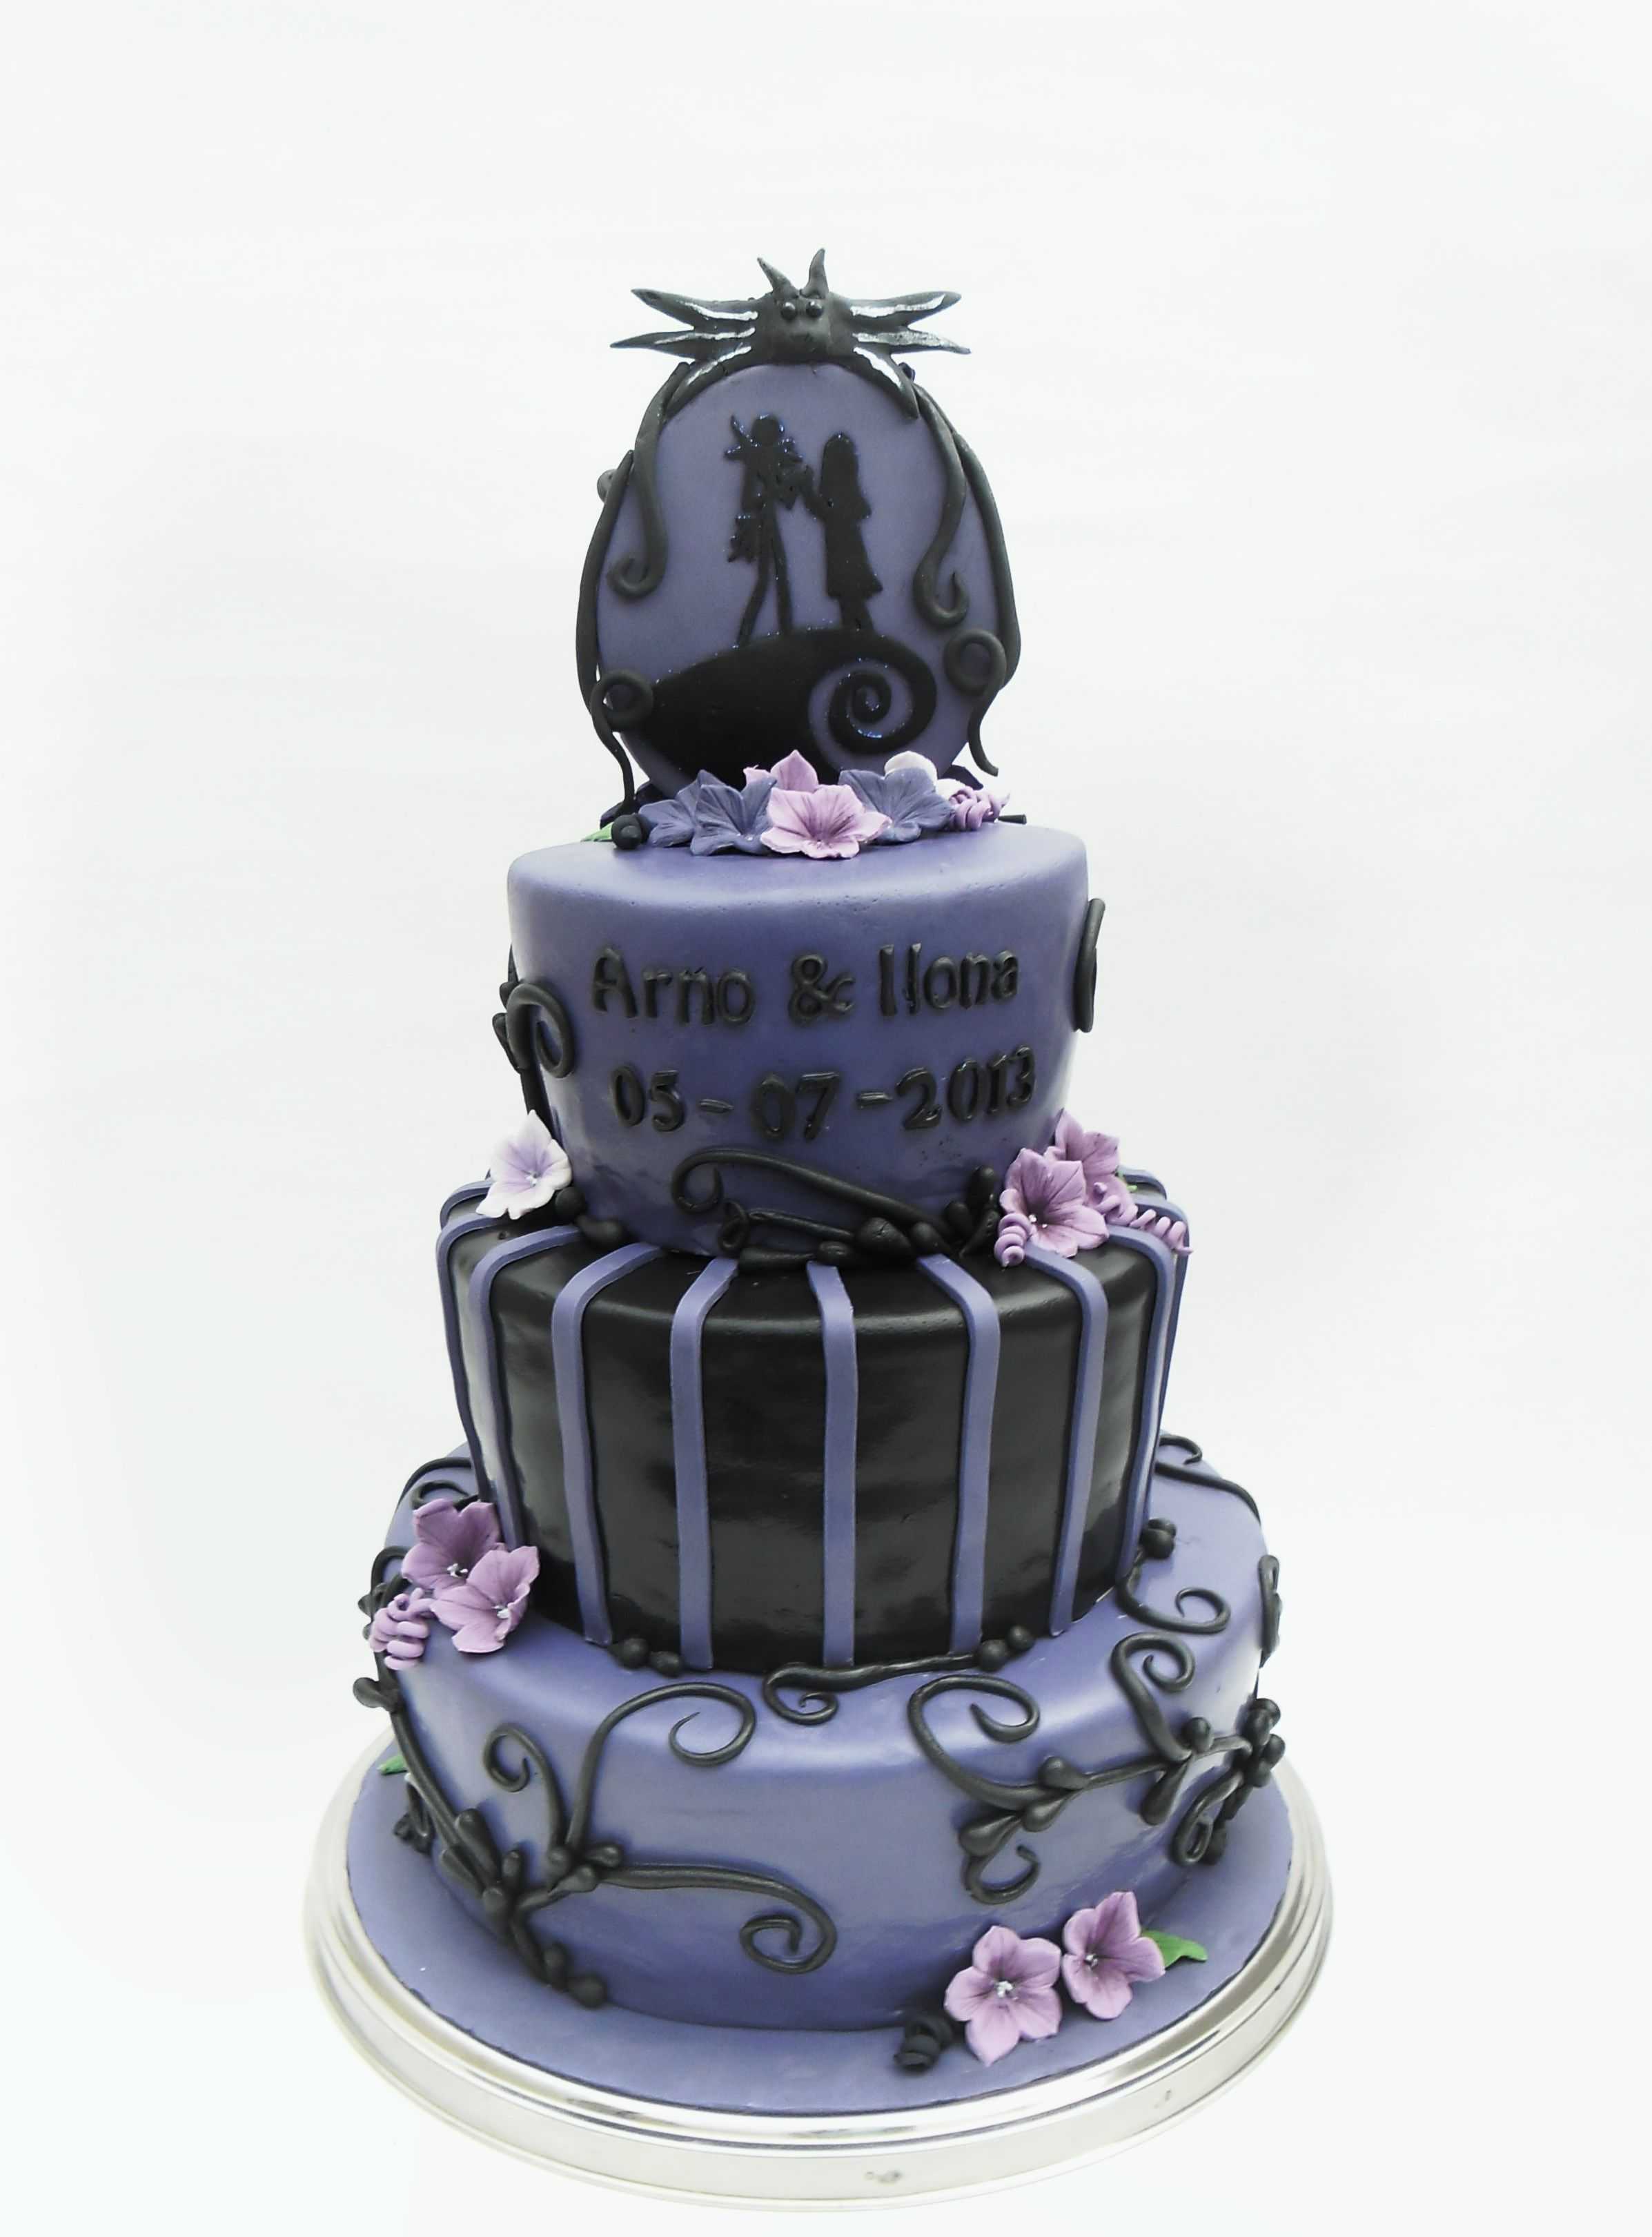 Nightmare before Christmas wedding cake | night before Christmas ...